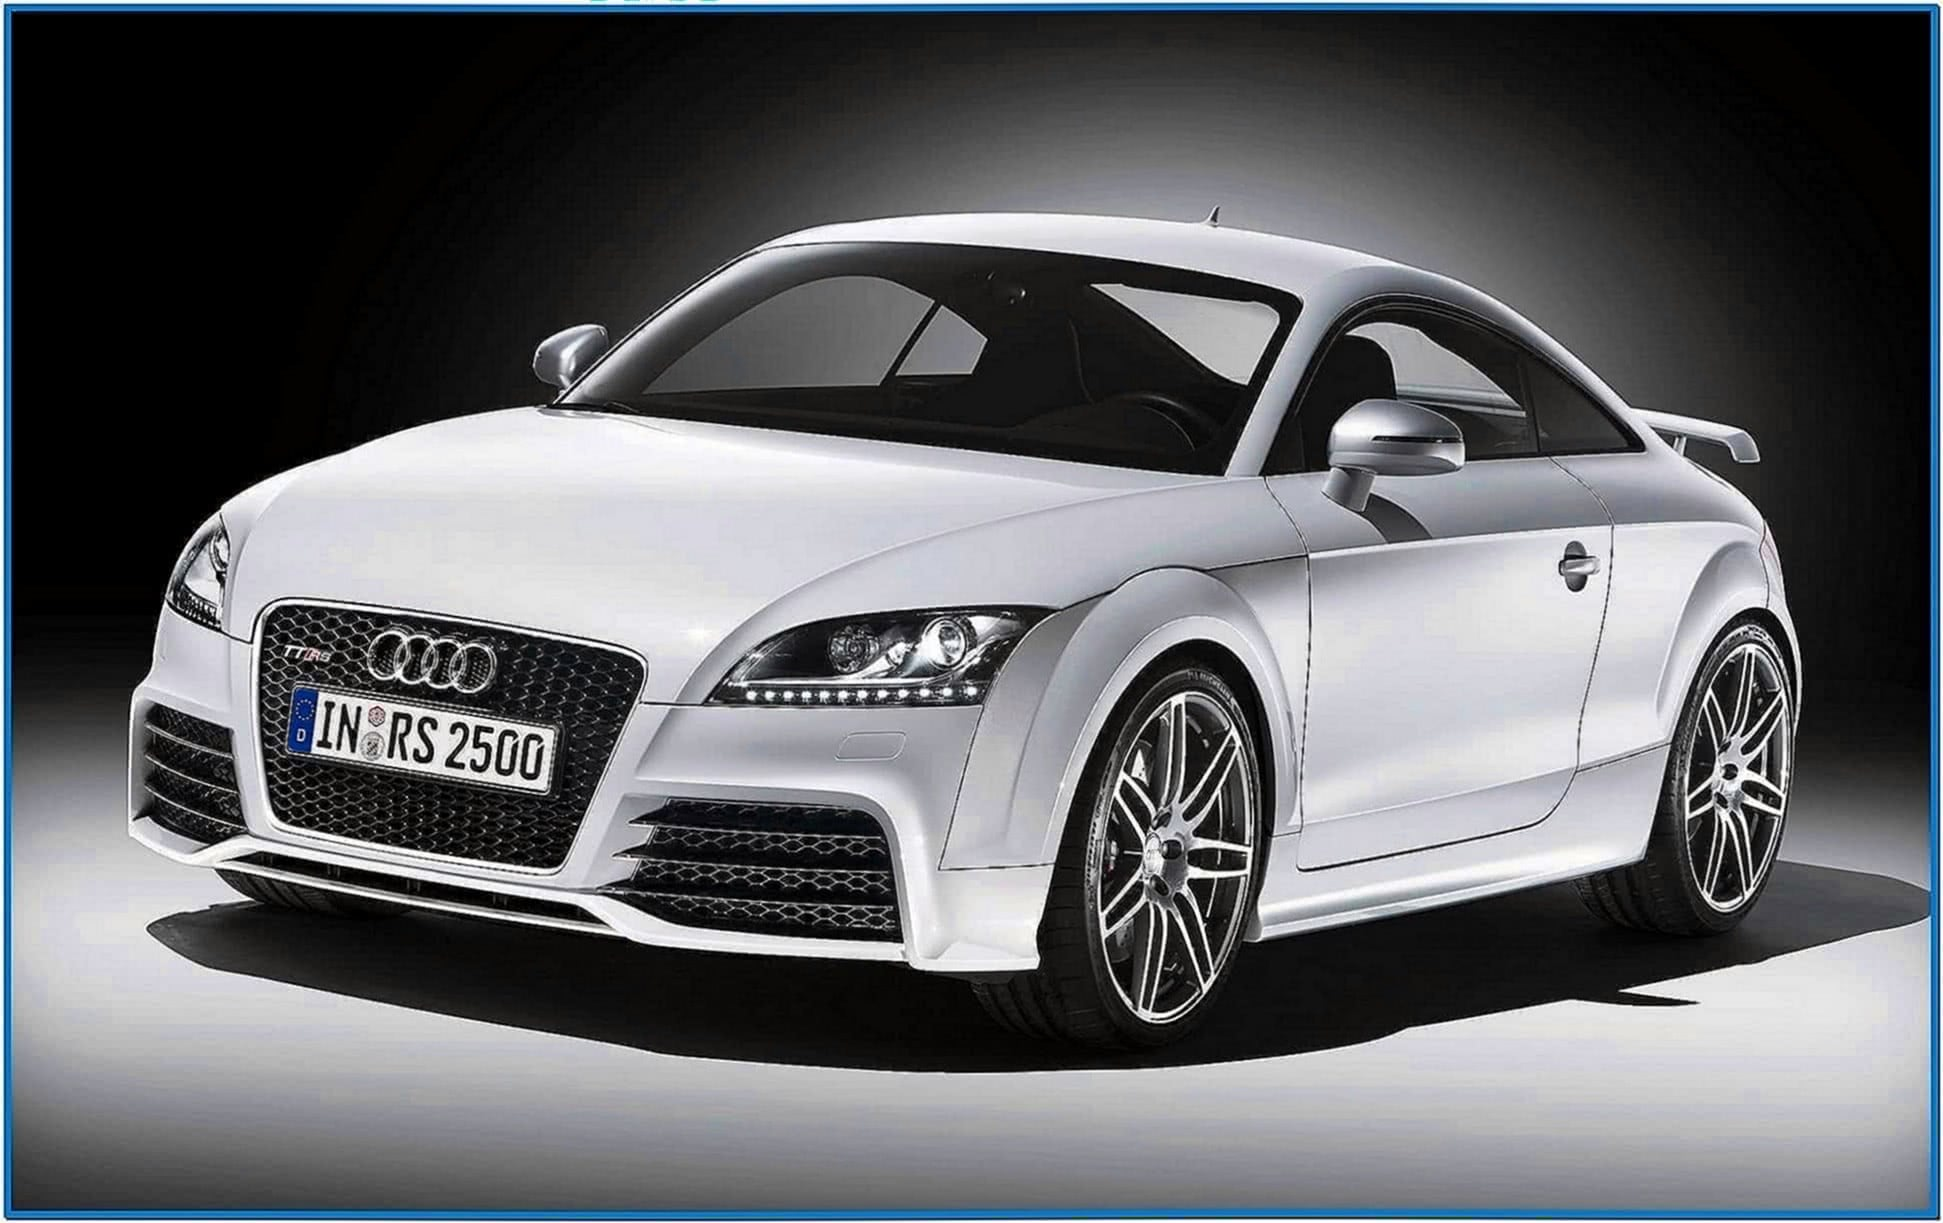 Audi TT Rs Screensaver